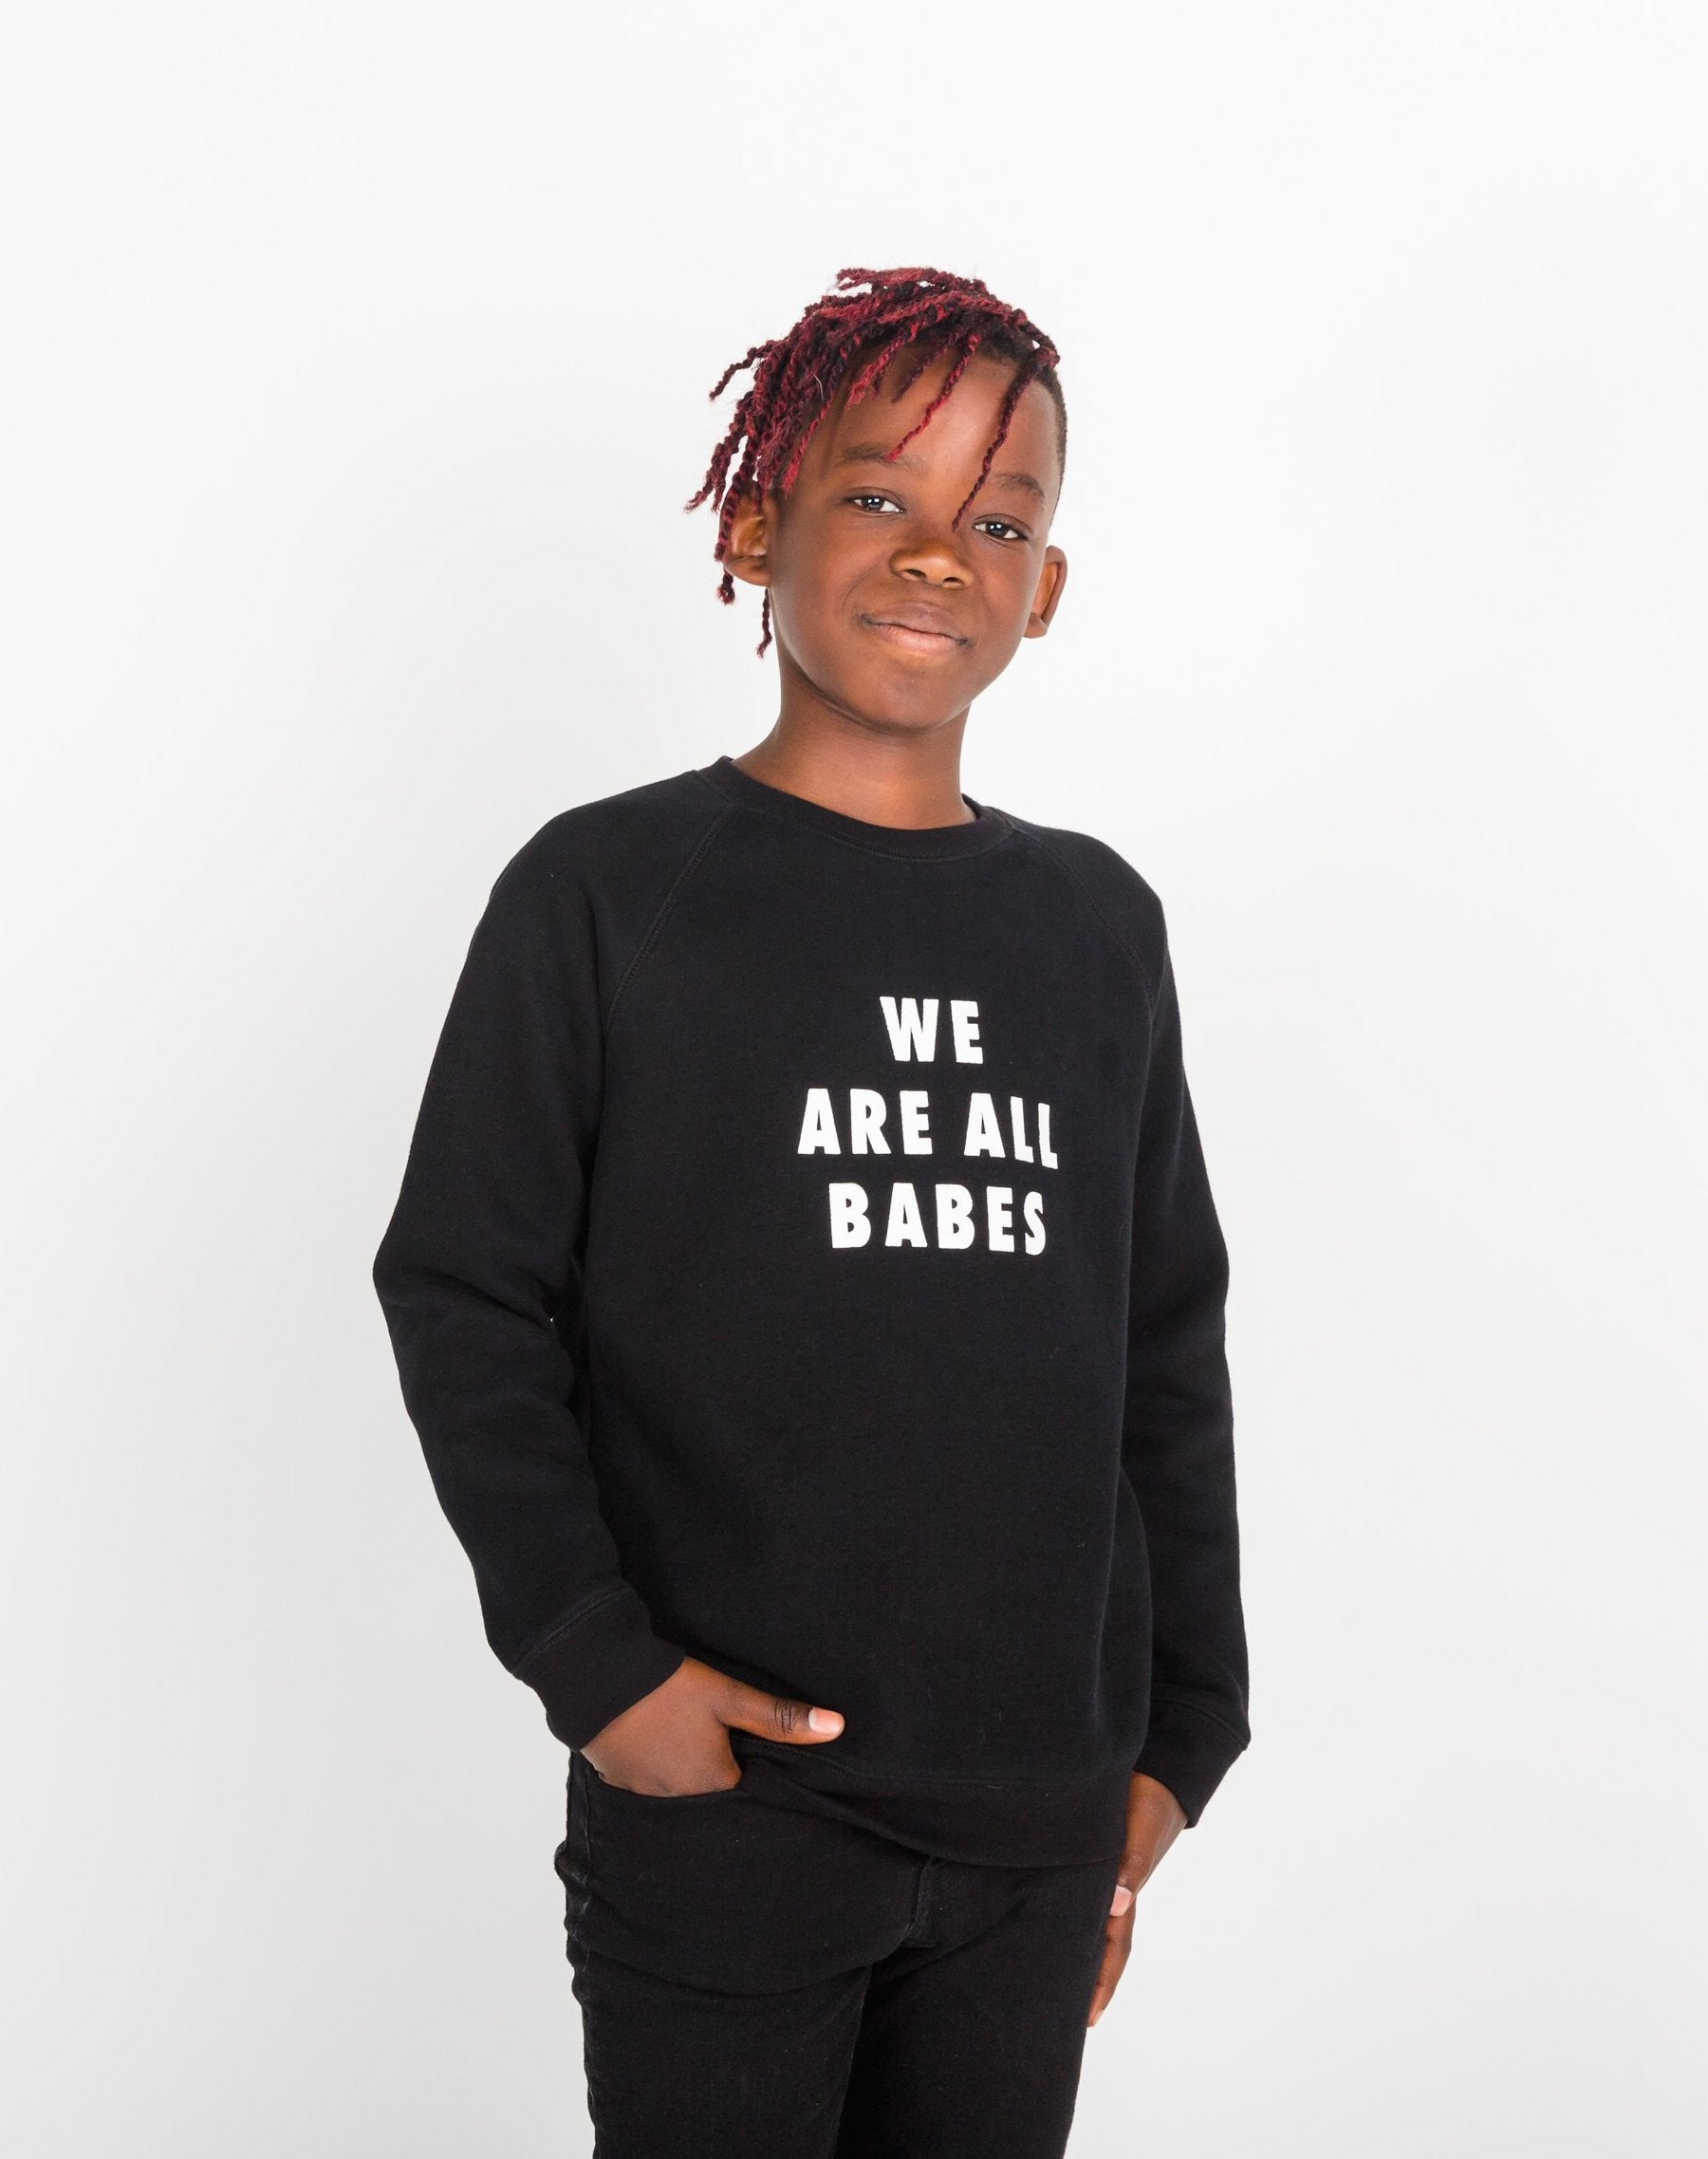 Photo of child wearing the We Are All Babes Little Babes classic crew neck sweatshirt in black by Brunette the Label.